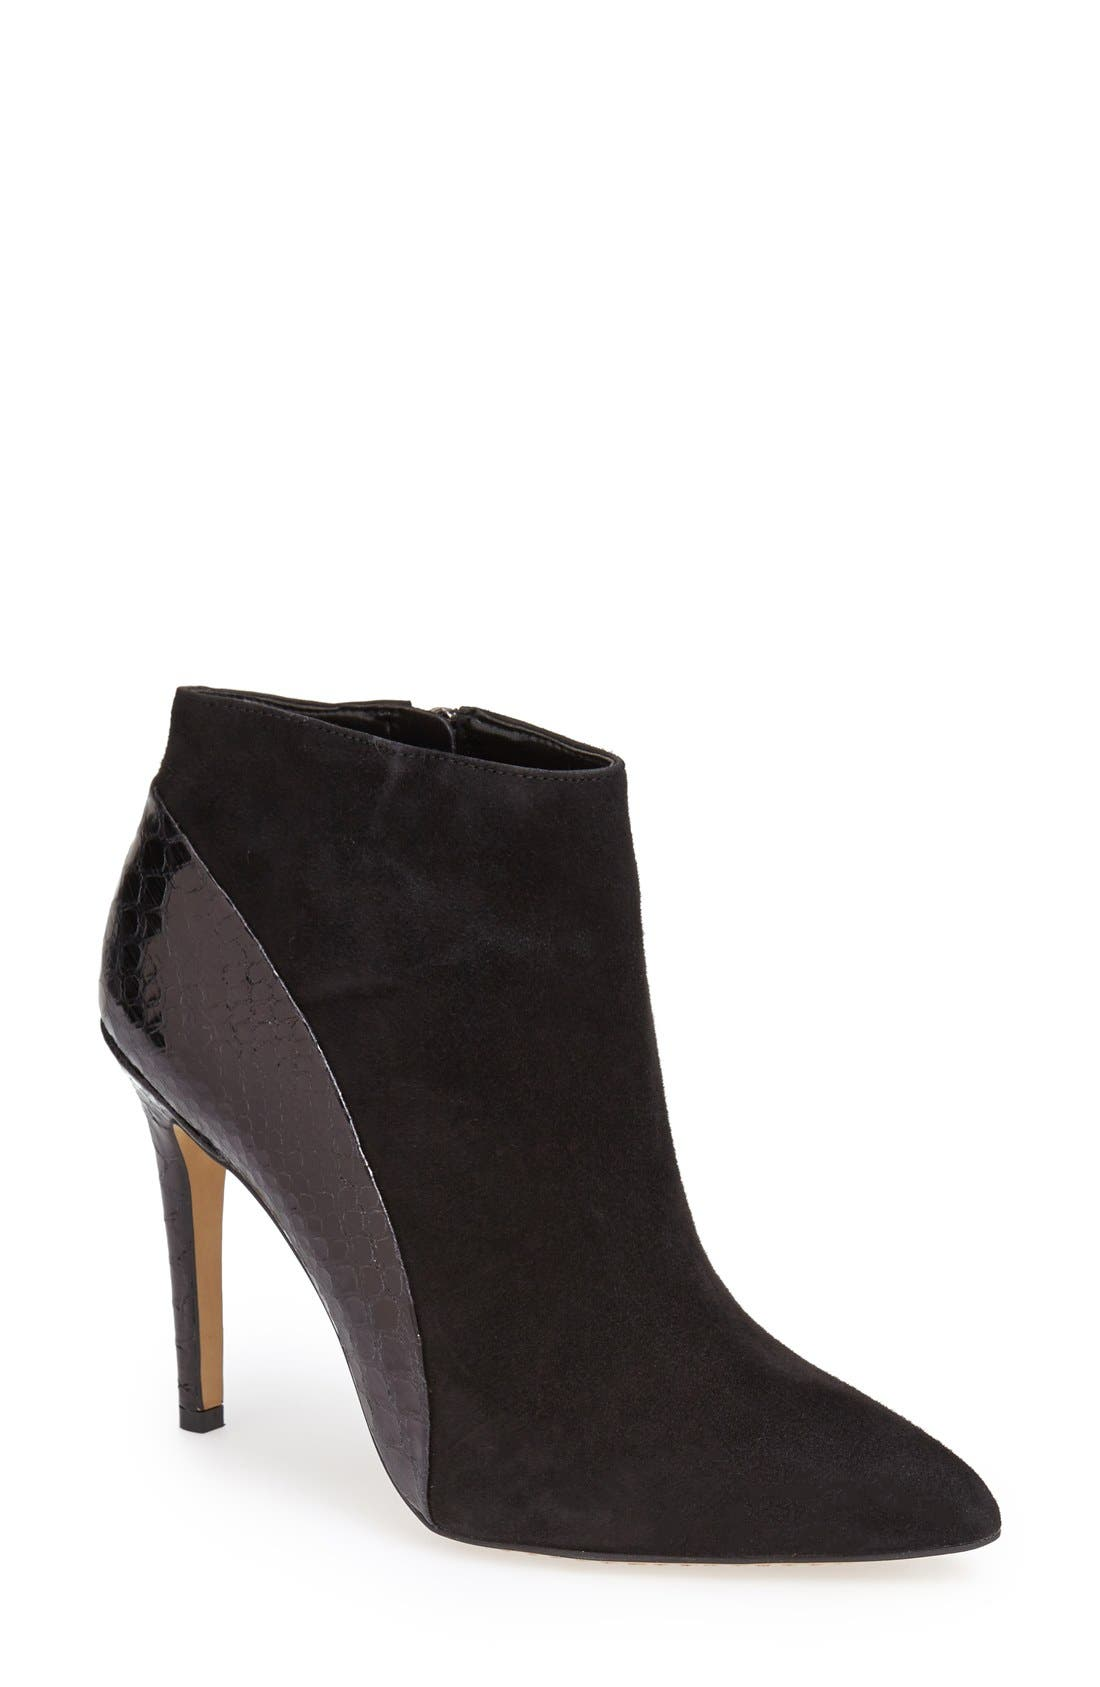 Alternate Image 1 Selected - Vince Camuto 'Kasi' Pointy Toe Bootie (Nordstrom Exclusive) (Women)